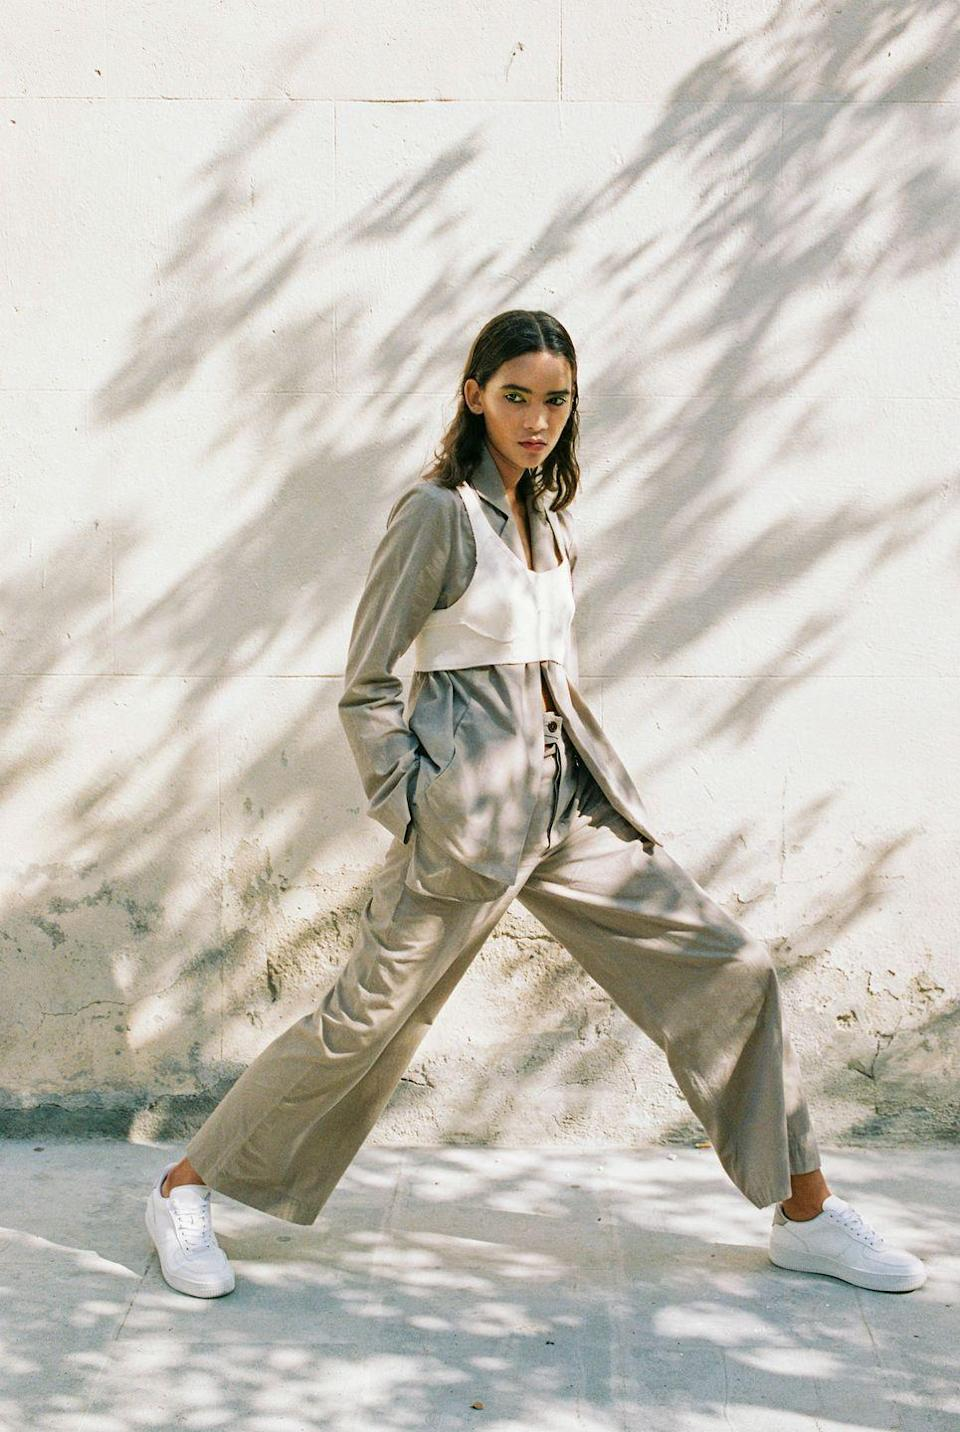 """<p>SONIA CARRASCO specialises is wearable workwear with a twist, and it's all sustainably made.</p><p>'At SONIA CARRASCO we exclusively work with recycled, organic or vegan materials, not only textiles but also tags, labels, packaging, papers, etc', founder and designer Sonia Carrasco told ELLE UK</p><p>'Having a long term plan for our company helps us activate more sustainable processes. For example, we recycle all the waste generated by the manufacturing of the collections and, as soon as we have enough quantity, create new fabrics from these leftovers therefore maximising our control over the supply chain. </p><p>'We follow the rule of """"never enough"""" - that's why we will always keep improving our processes and we will never stop researching and learning the latest technologies, innovations and possible partnerships to be in the state of the art of responsibility.'</p><p><a class=""""link rapid-noclick-resp"""" href=""""https://sonia-carrasco.com/"""" rel=""""nofollow noopener"""" target=""""_blank"""" data-ylk=""""slk:SHOP SONIA CARRASCO NOW"""">SHOP SONIA CARRASCO NOW</a></p>"""